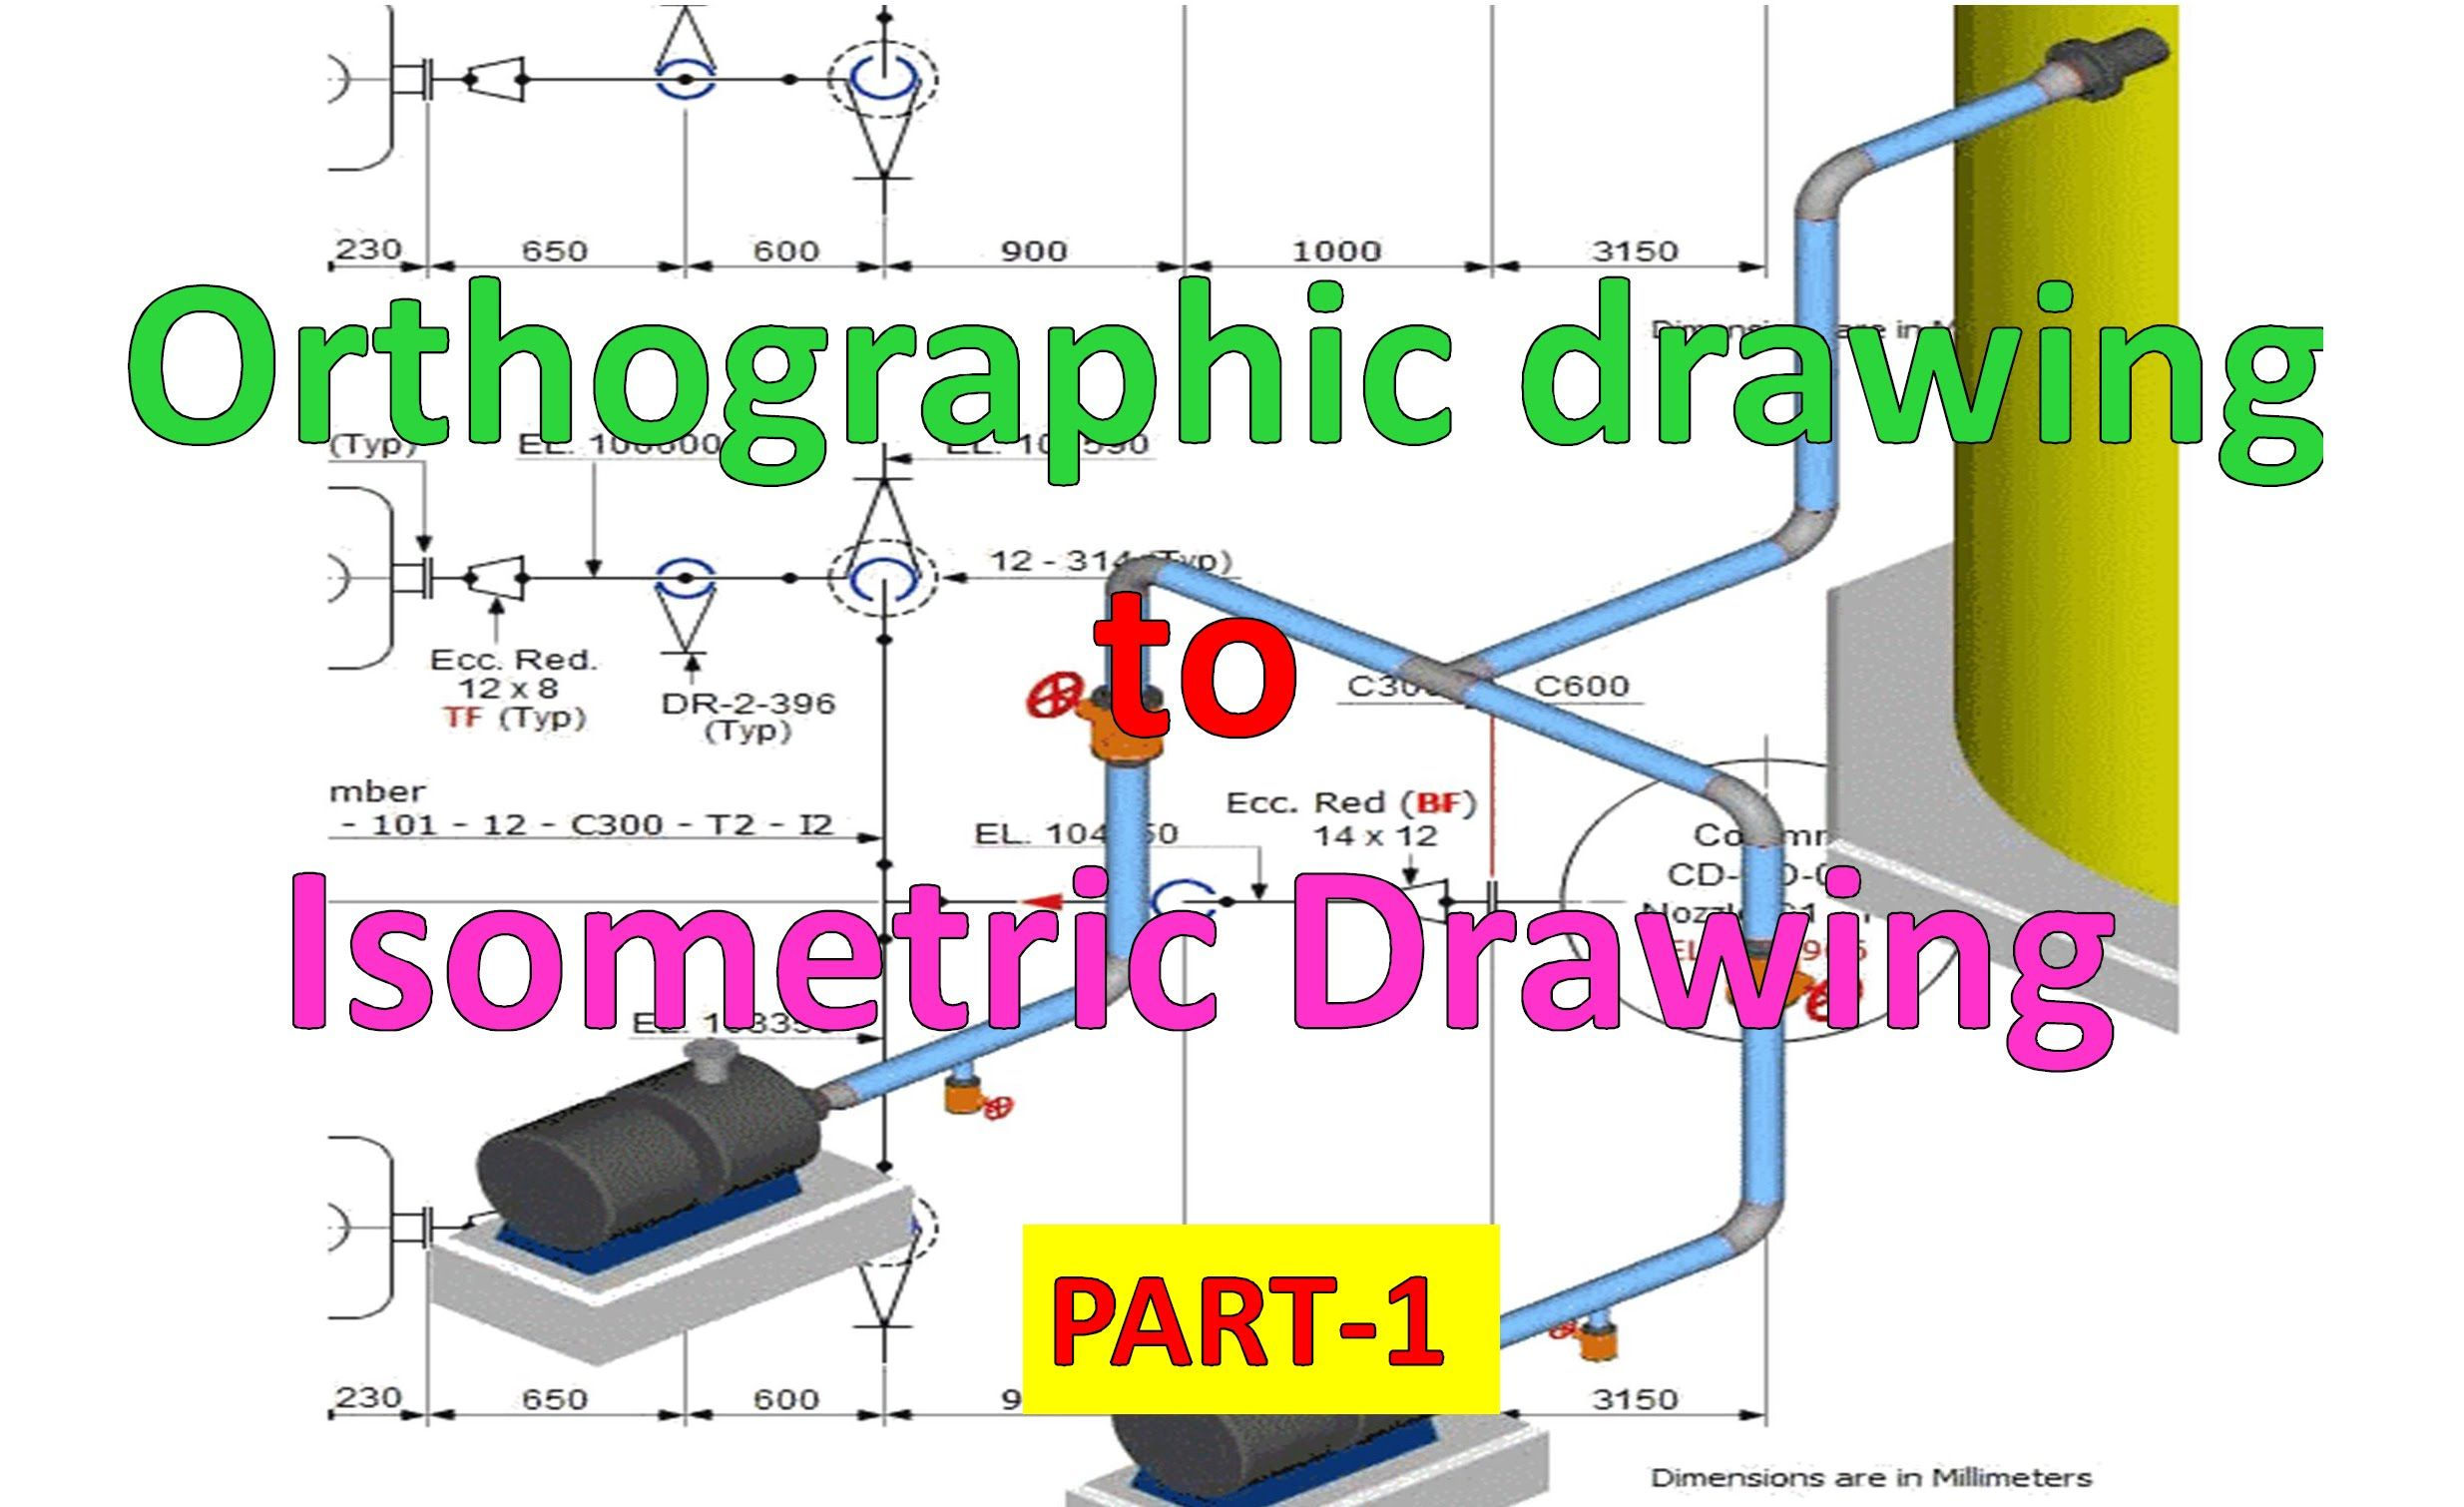 medium resolution of piping draw isometric drawing from orthographic drawing part 1